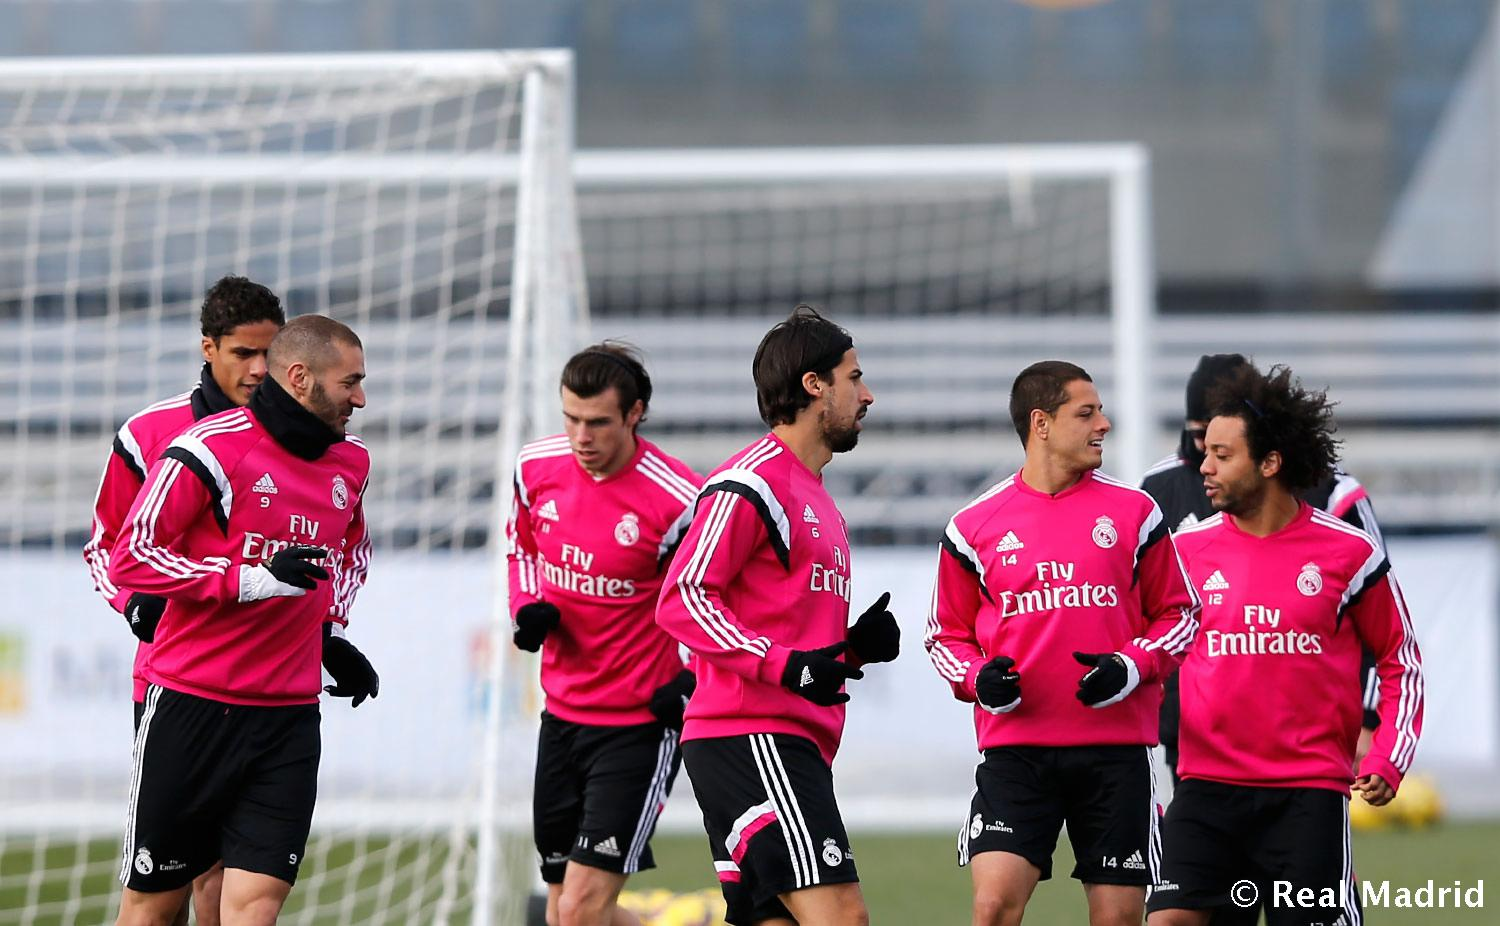 Real Madrid - Entrenamiento del Real Madrid - 21-01-2015